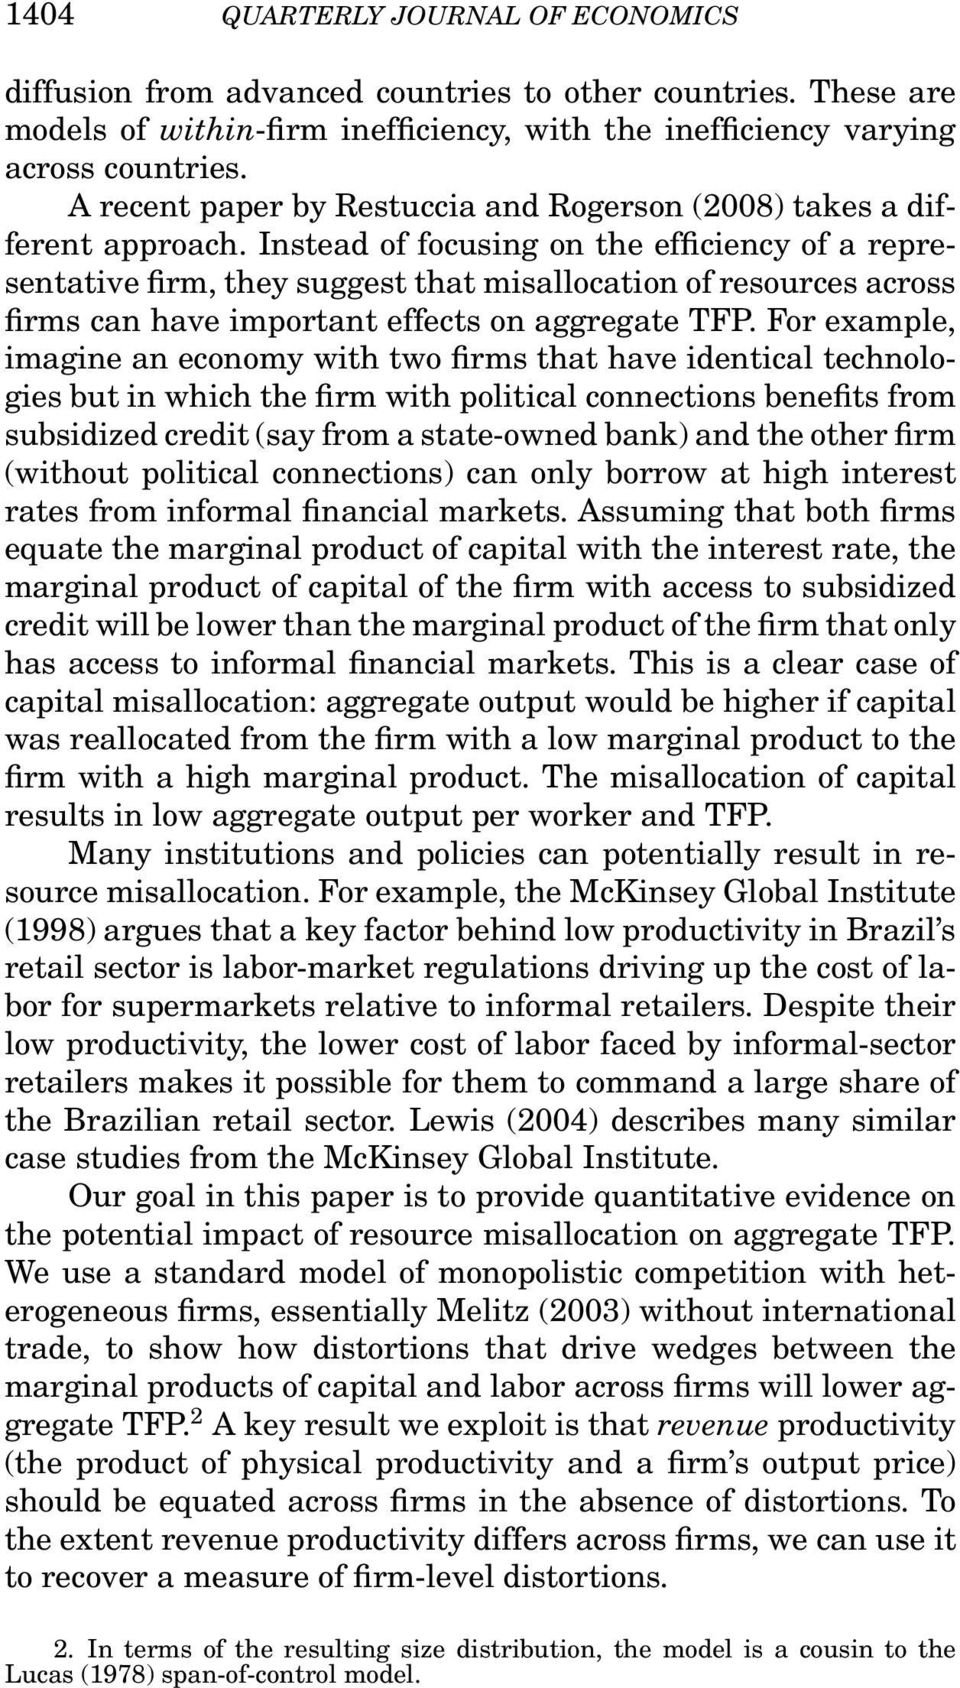 Instead of focusing on the efficiency of a representative firm, they suggest that misallocation of resources across firms can have important effects on aggregate TFP.